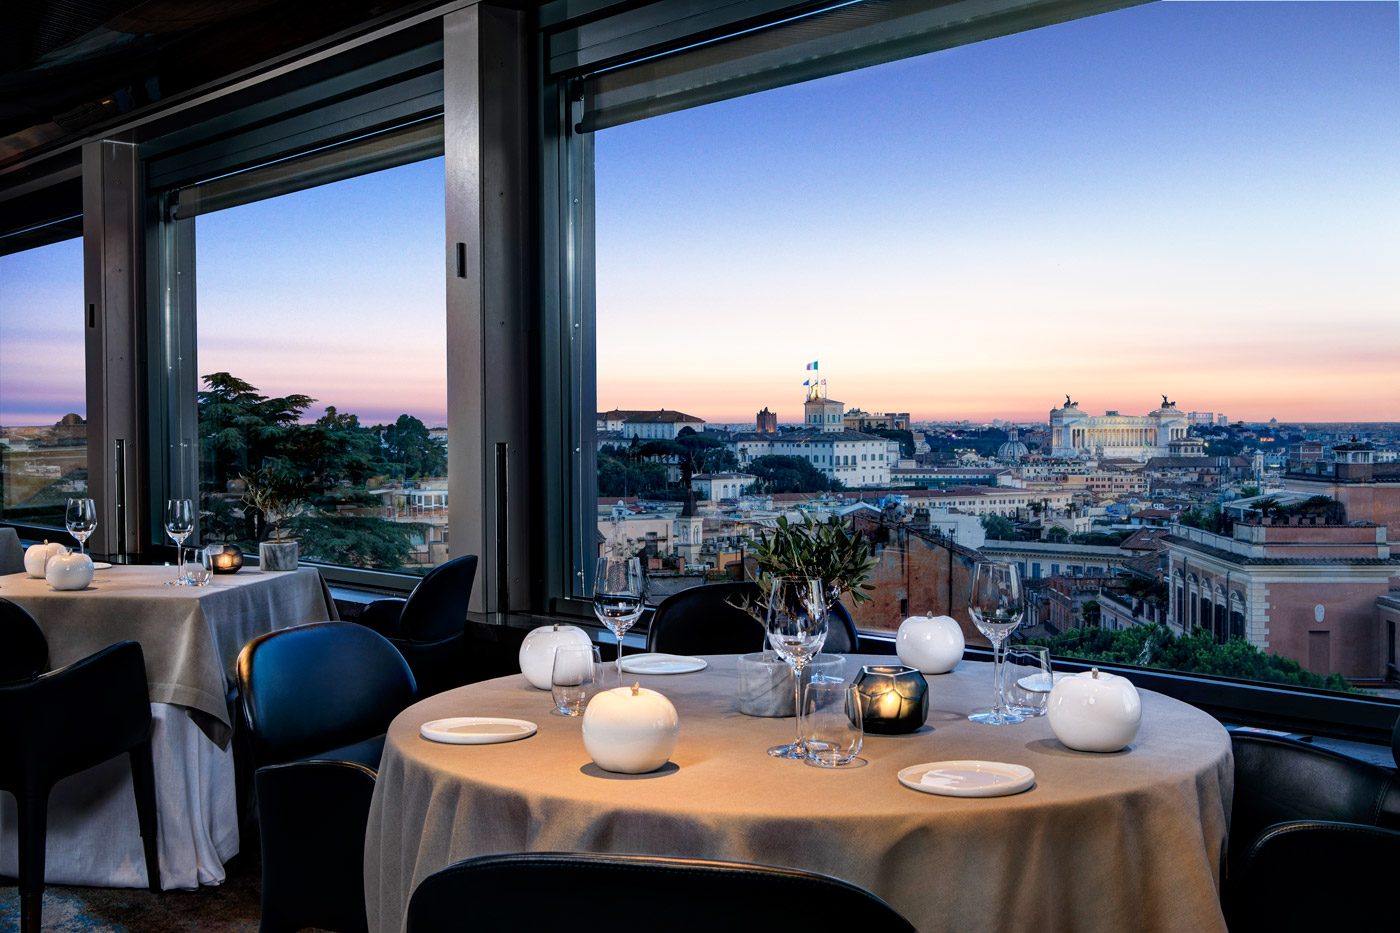 The Michelin-starred La Terrazza restaurant.